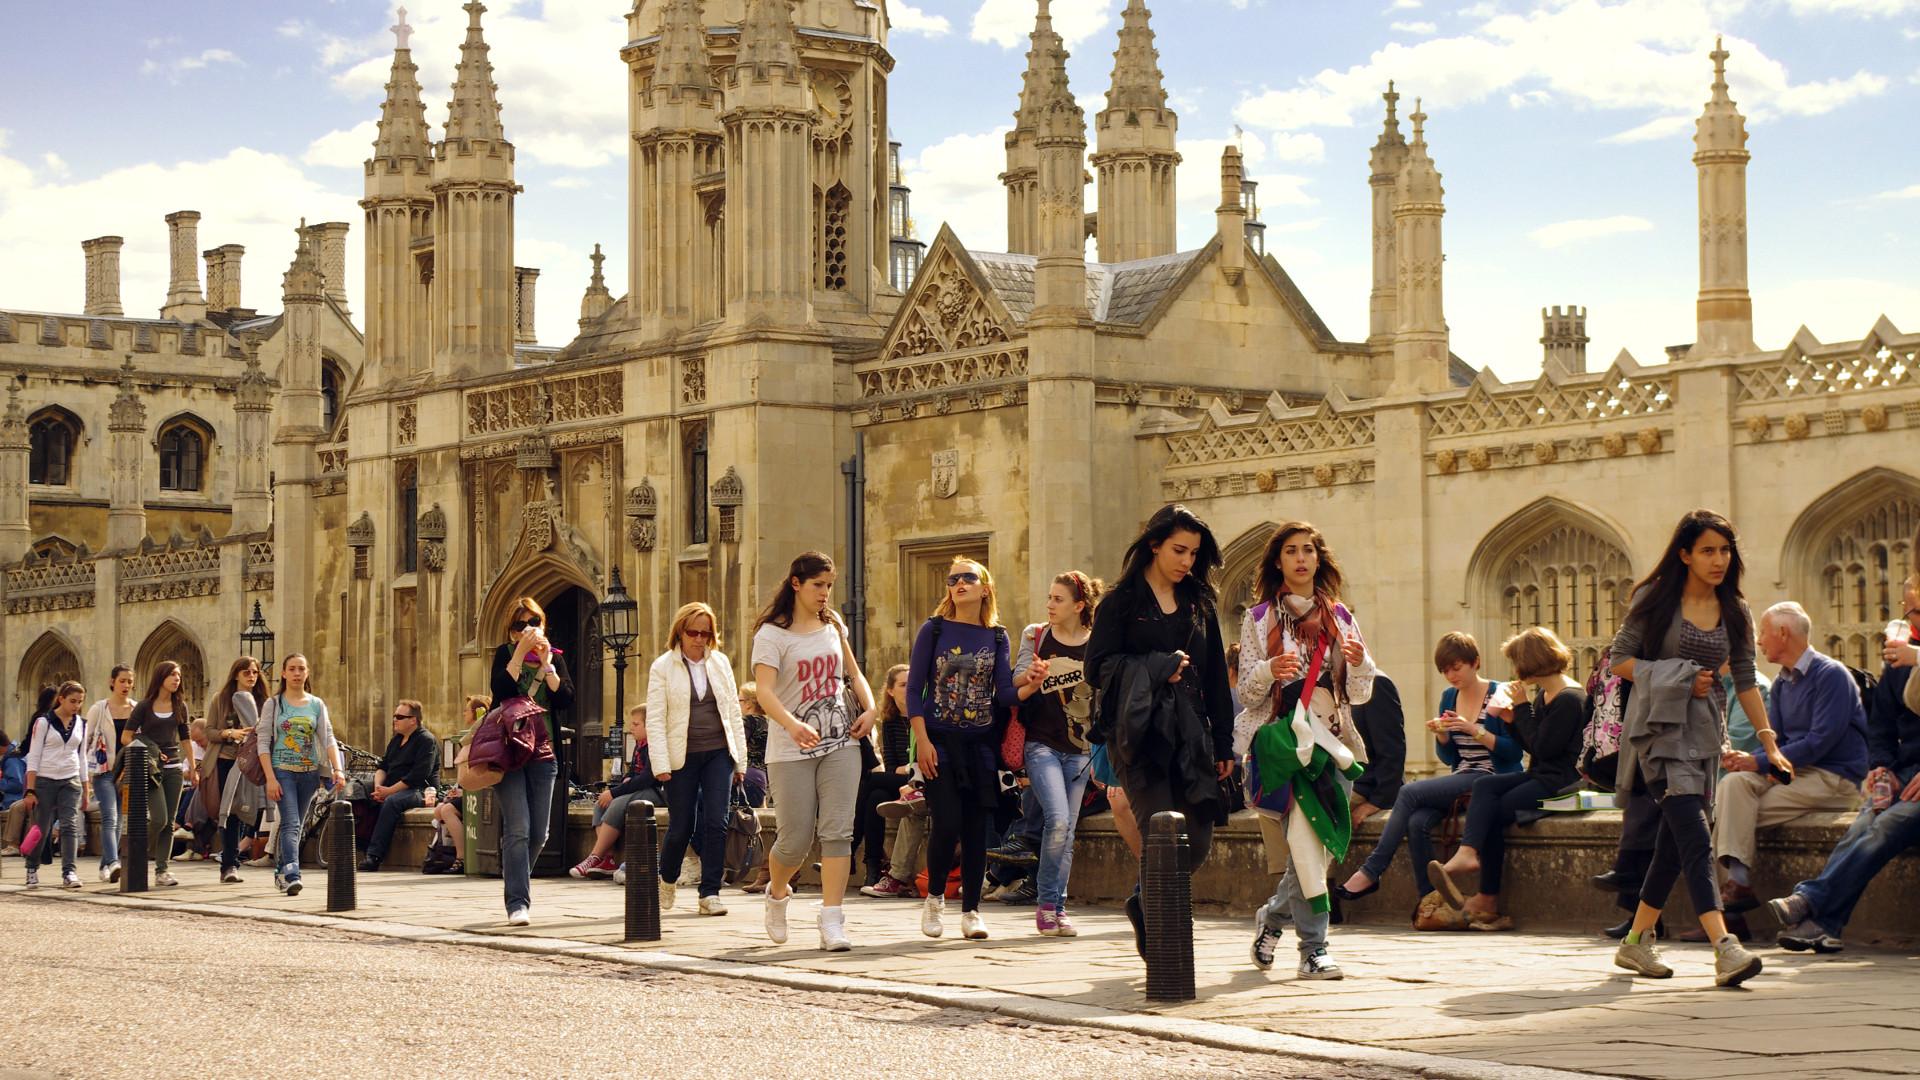 University of Cambridge, United Kingdom